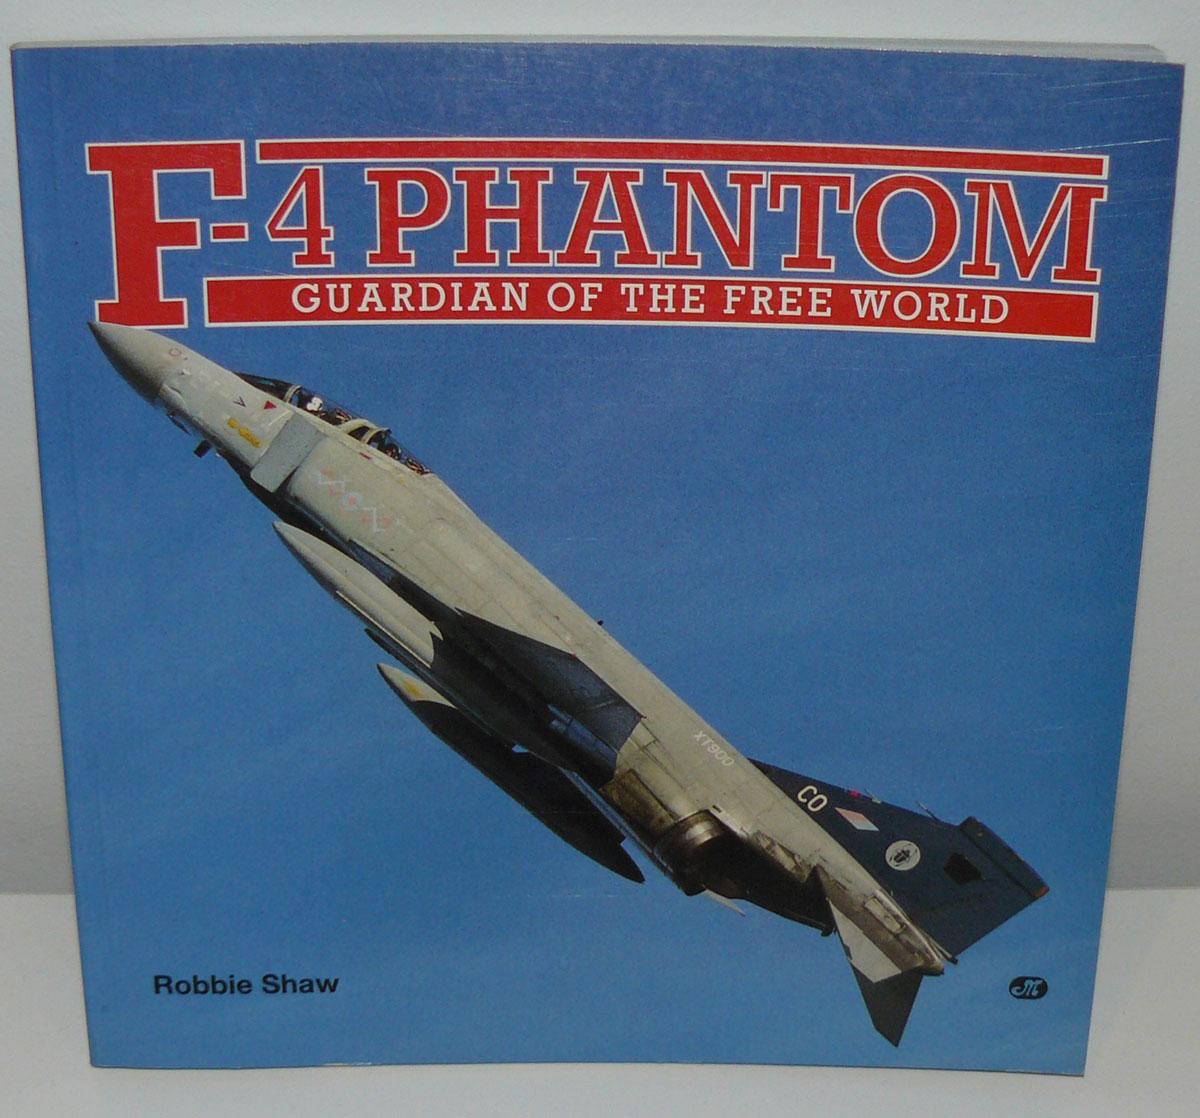 F4 Phantom Guardian of the Free World by Robbie Shaw